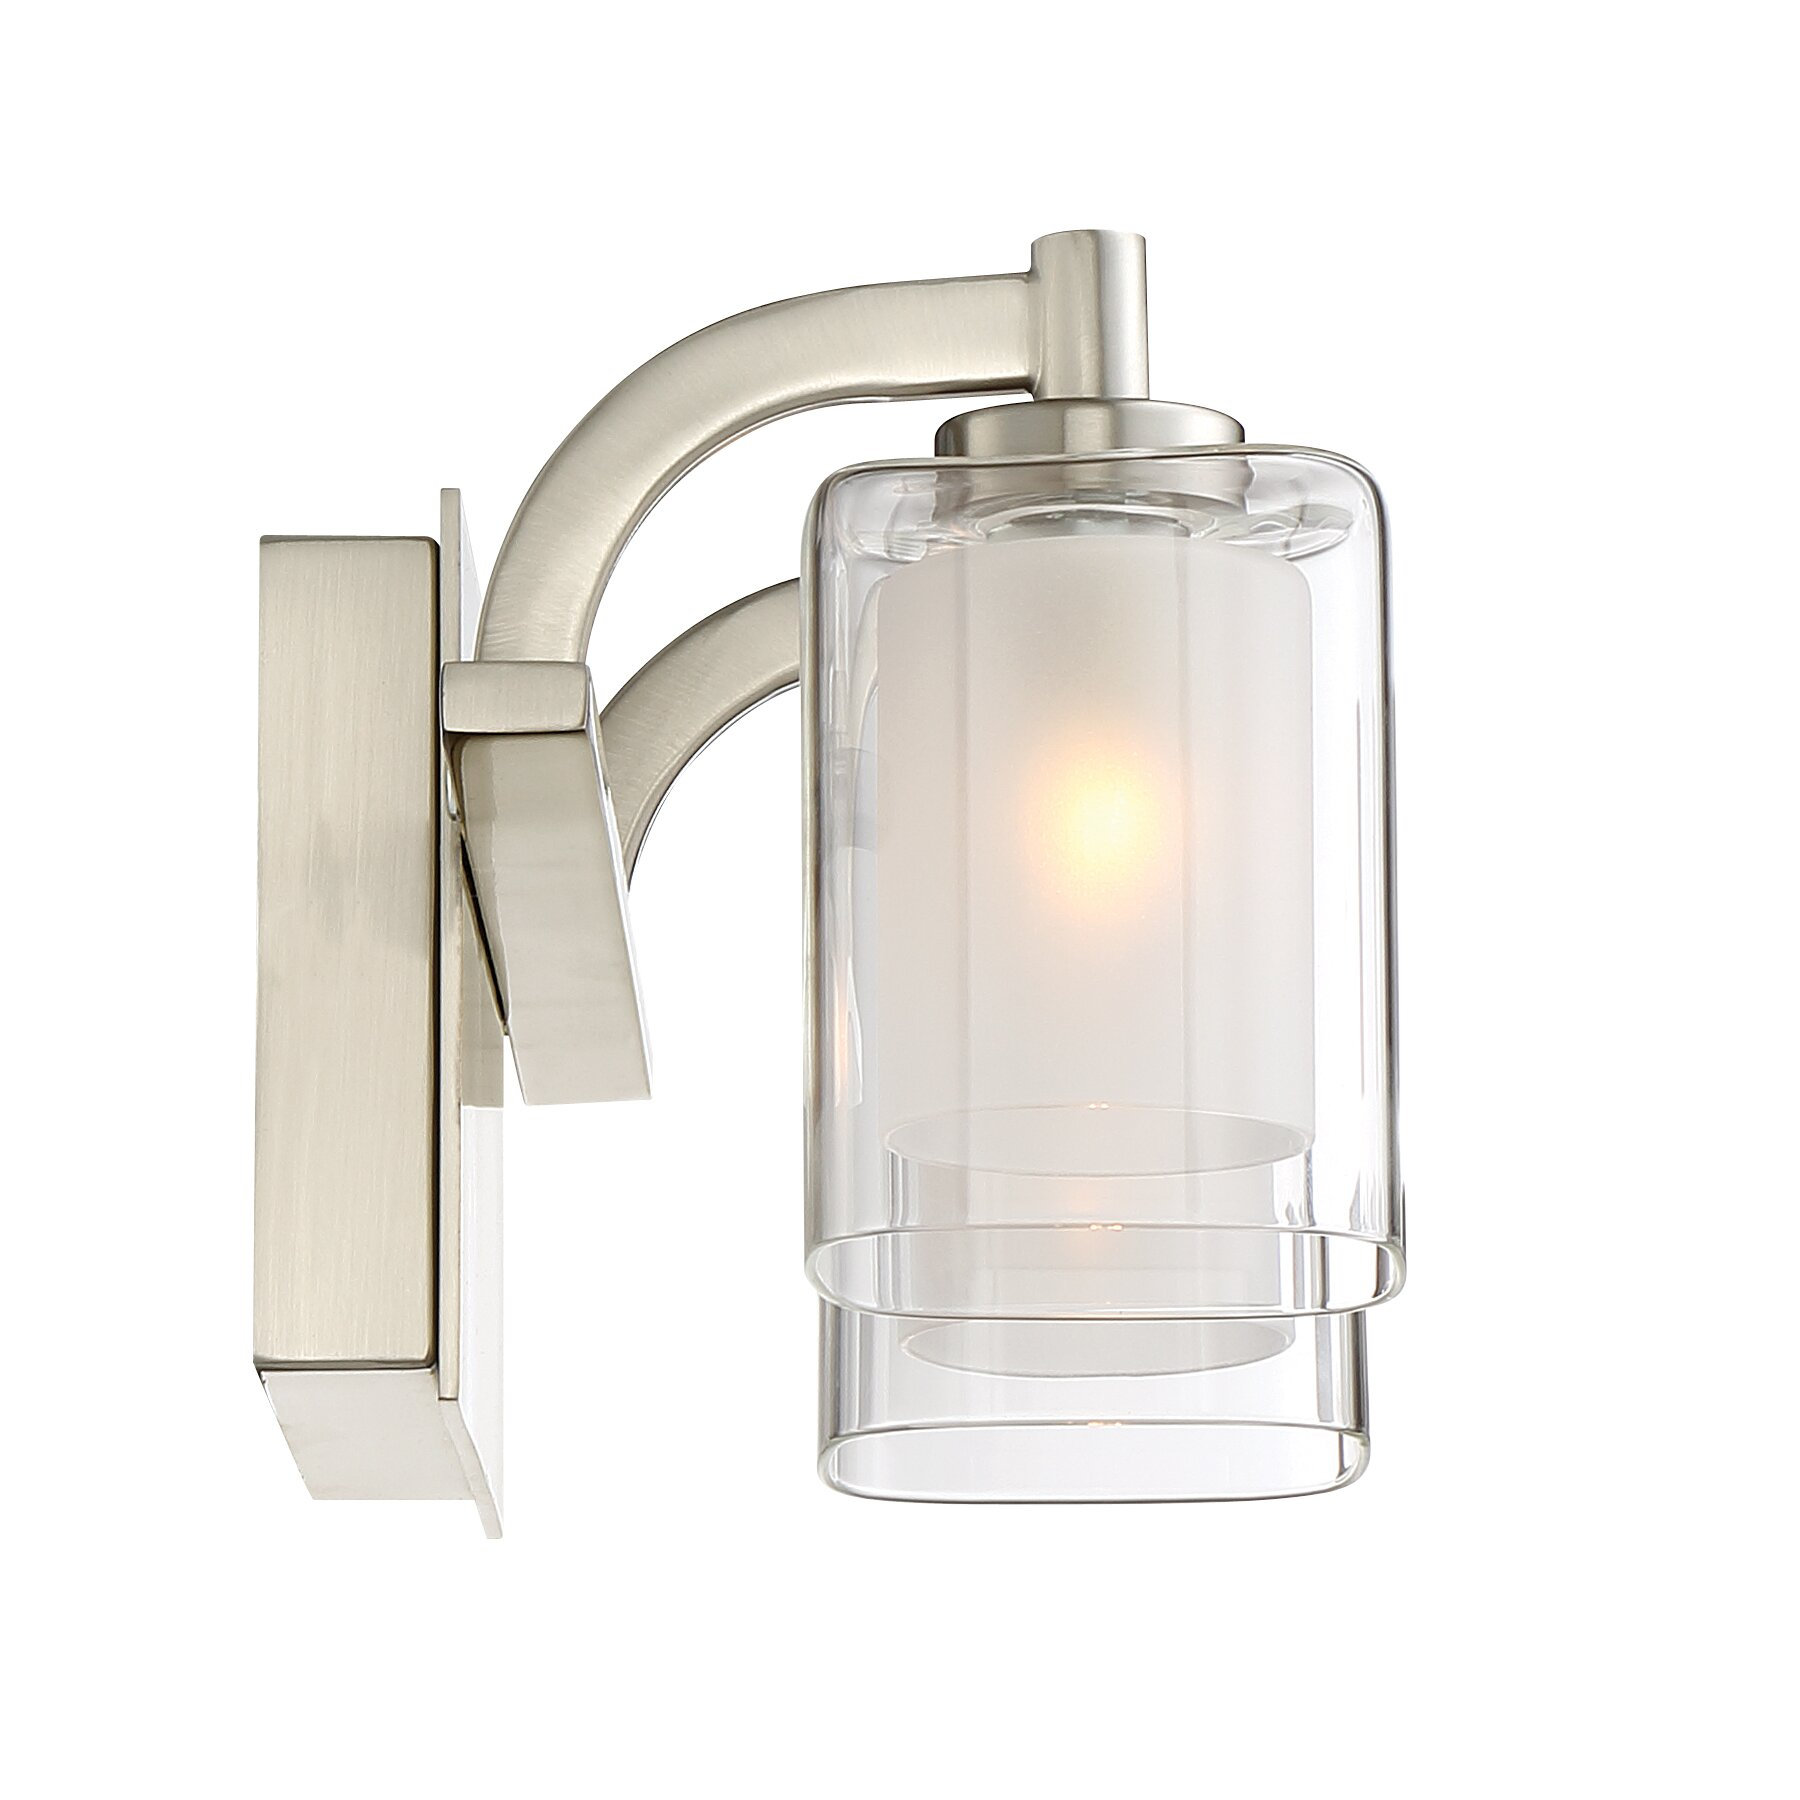 Quoizel Vanity Lights : Quoizel Kolt 2 Light Vanity light & Reviews Wayfair